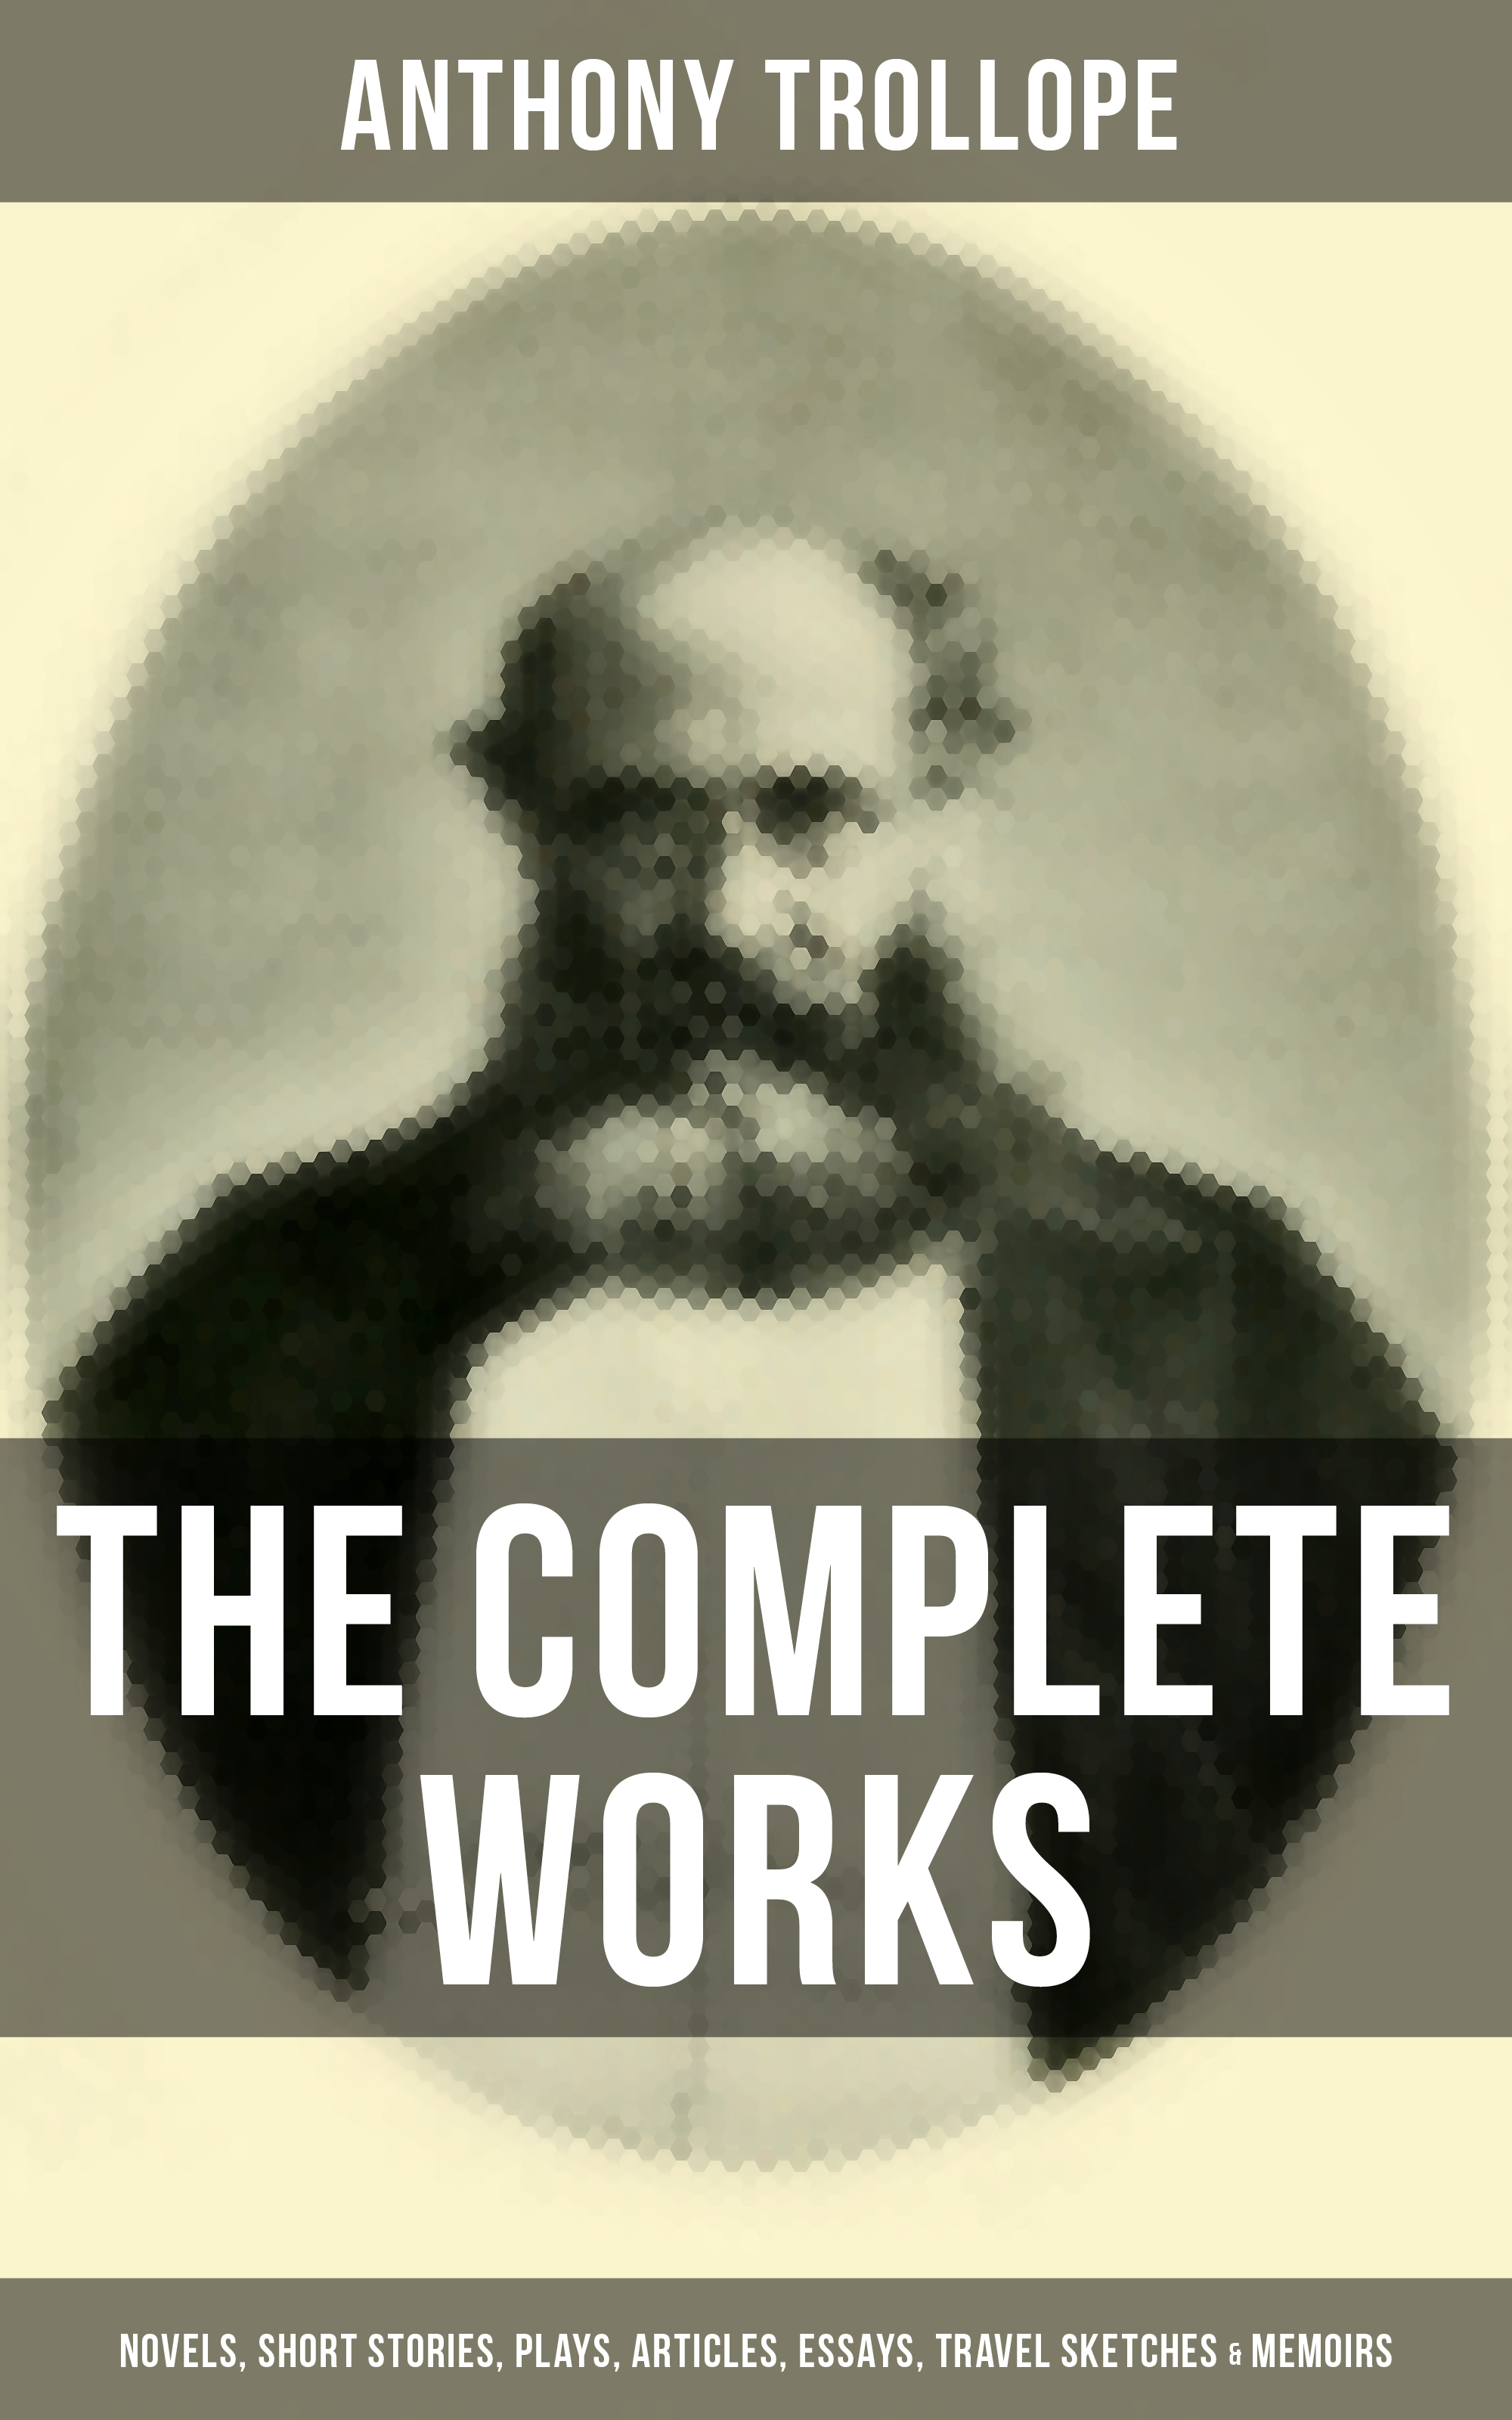 Anthony Trollope The Complete Works of Anthony Trollope: Novels, Short Stories, Plays, Articles, Essays, Travel Sketches & Memoirs цена в Москве и Питере